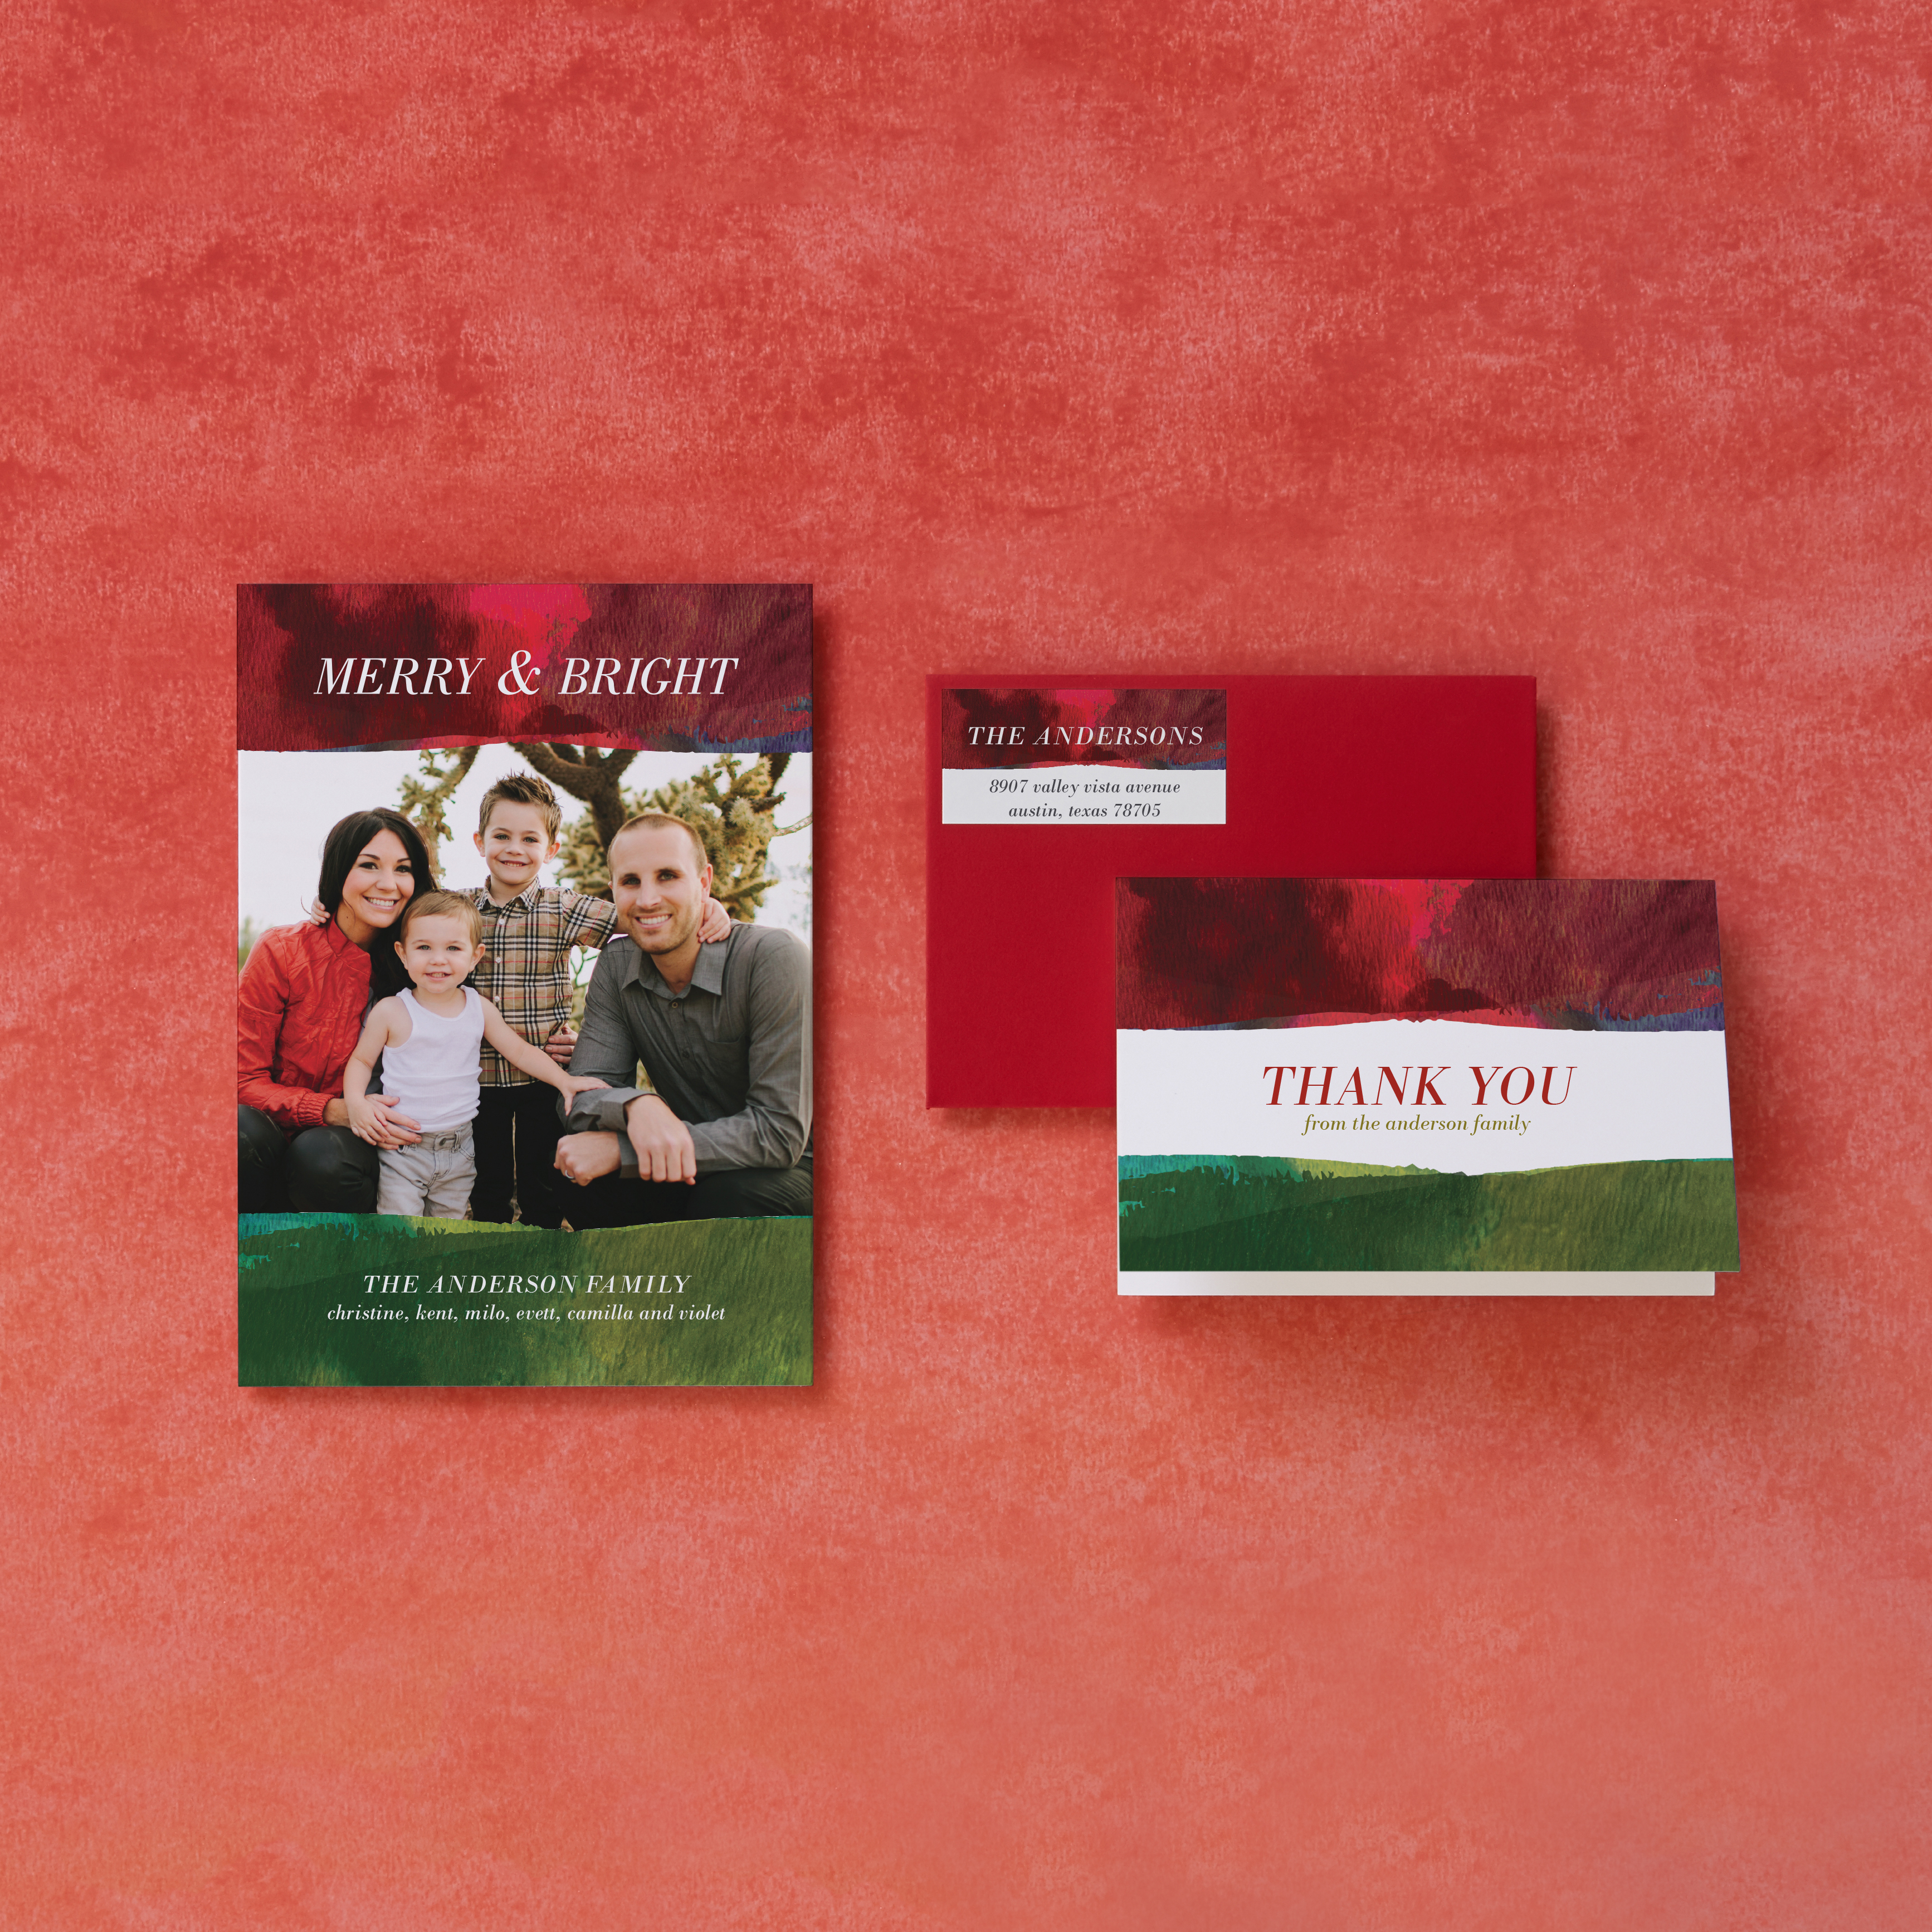 tiny prints gives back this holiday season with an exclusive